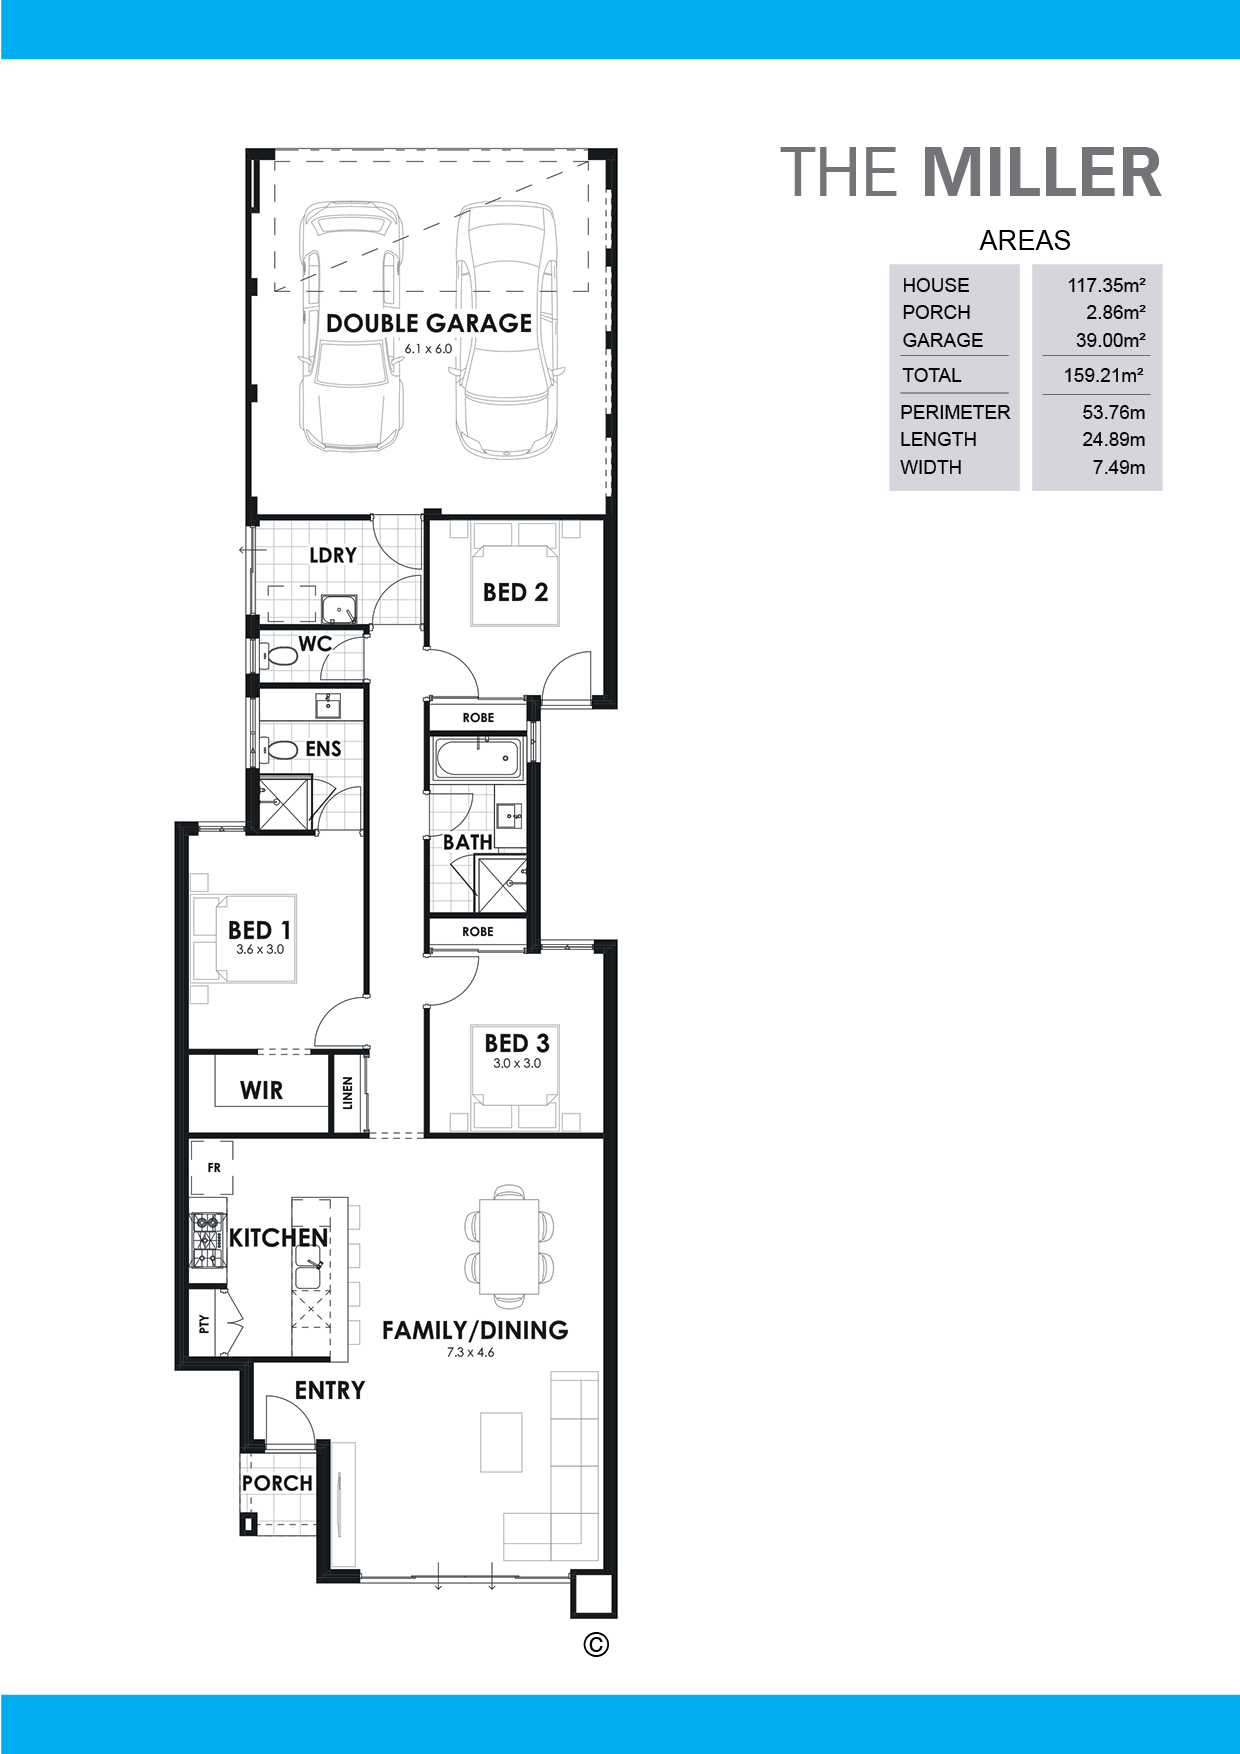 The Miller Floorplan